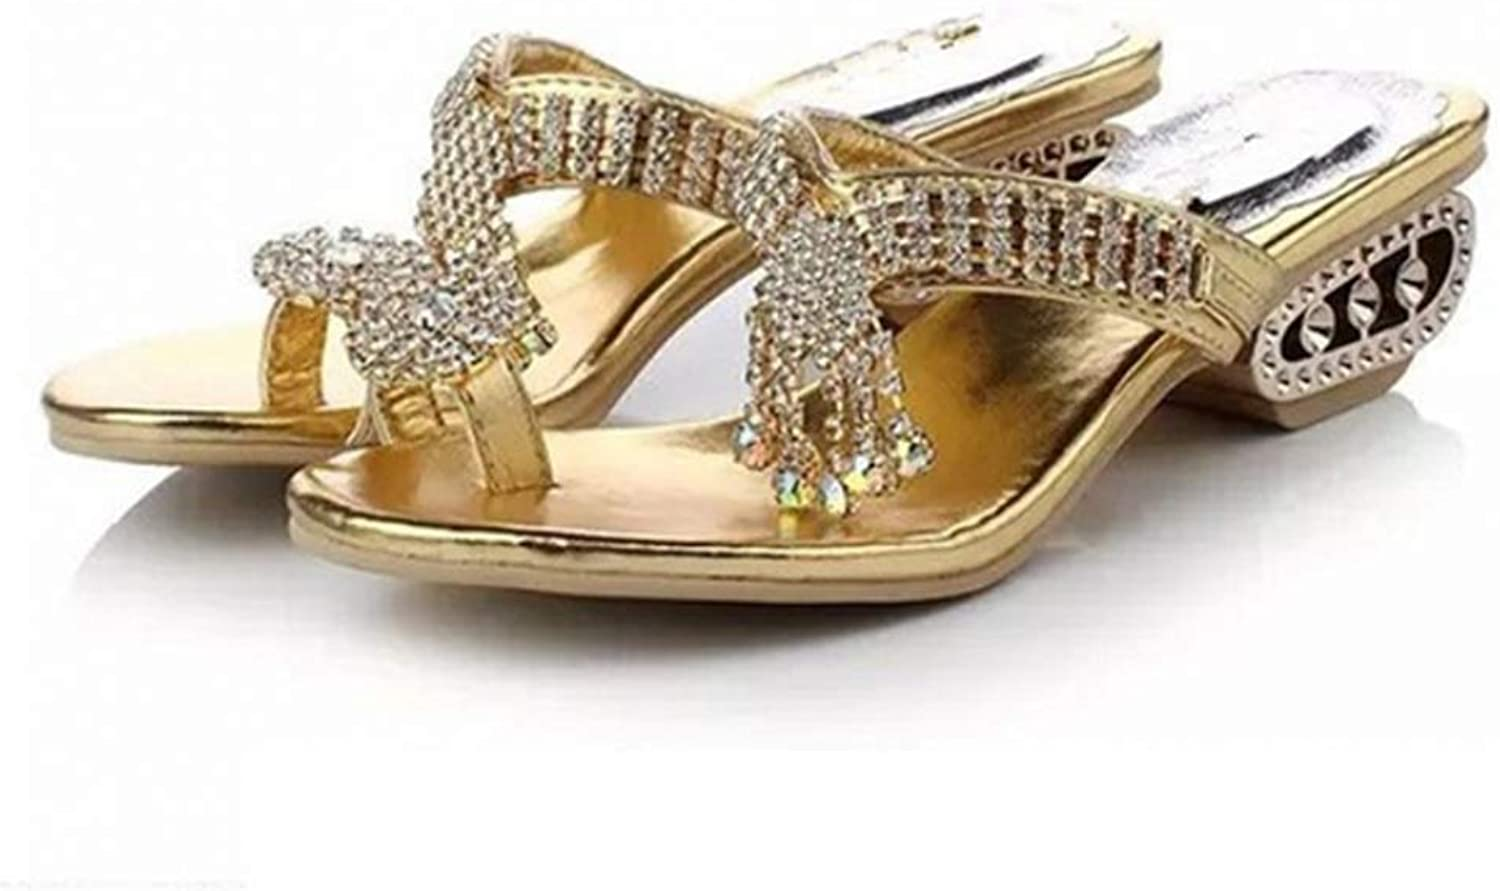 T-JULY Women's Sandals Breathable Hollow Out Low Heel Rhinestone Slippers Summer Ladies Fashion Sexy shoes